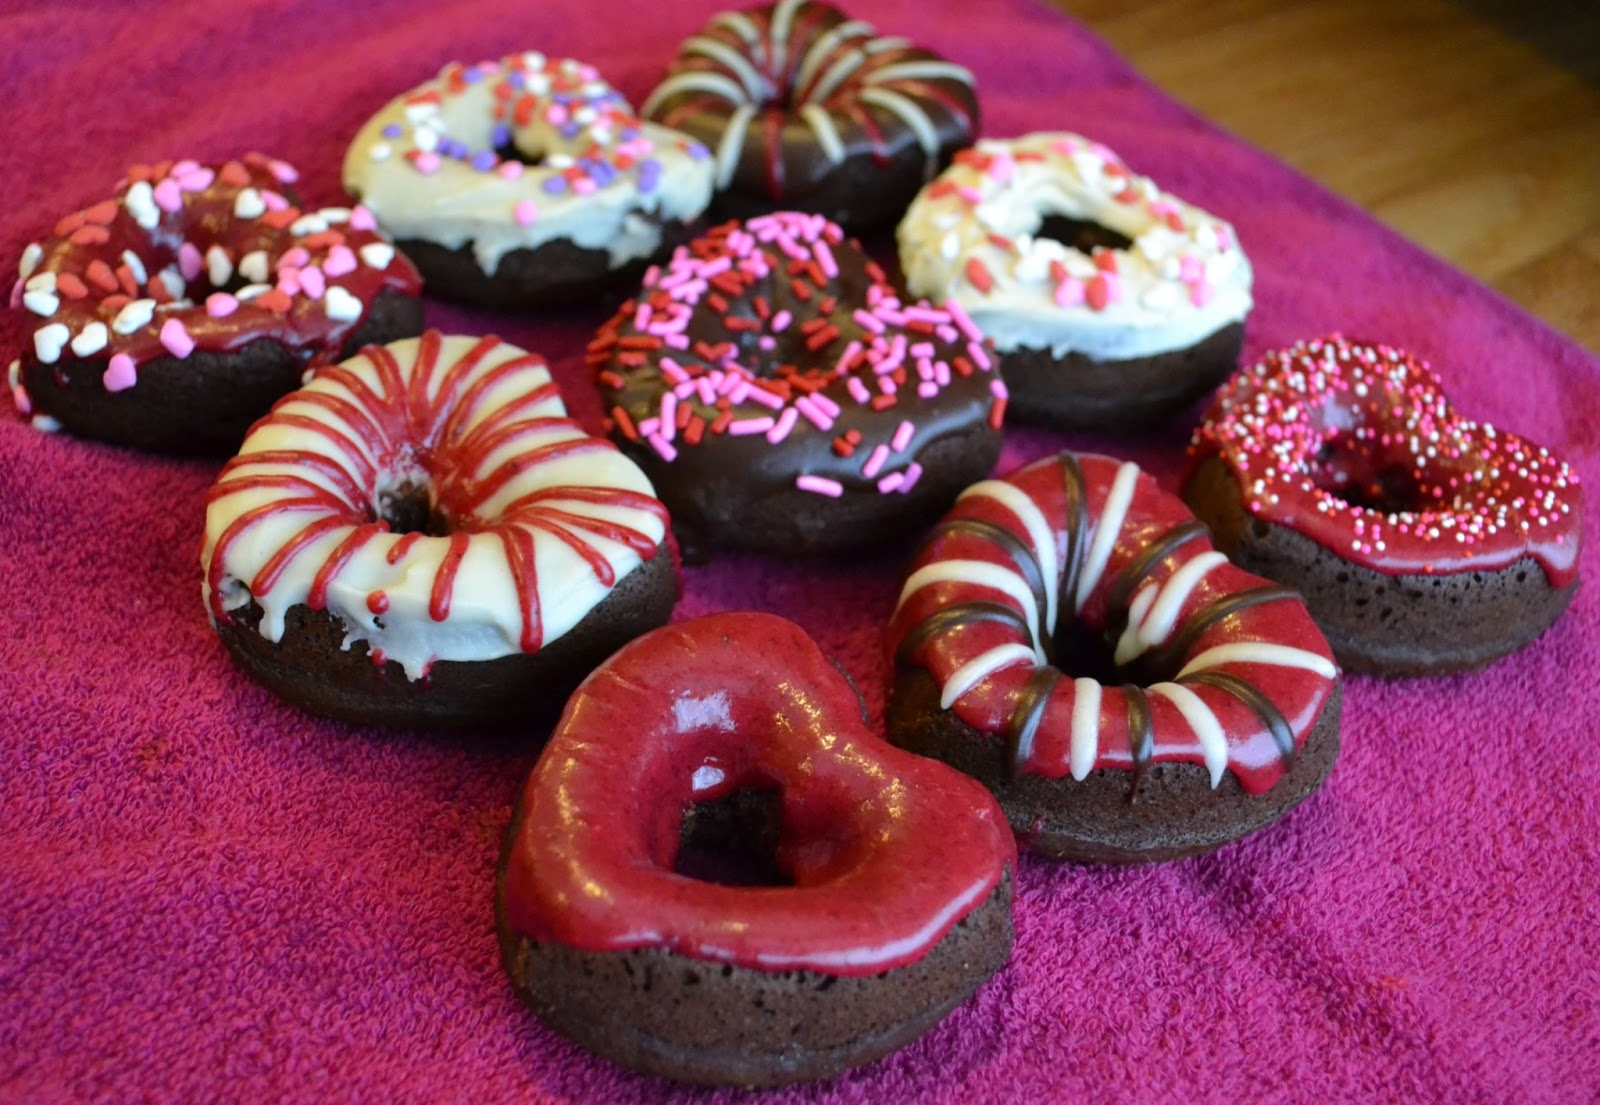 Growing Up Veg Chocolate Cake Donuts With Raspberry And